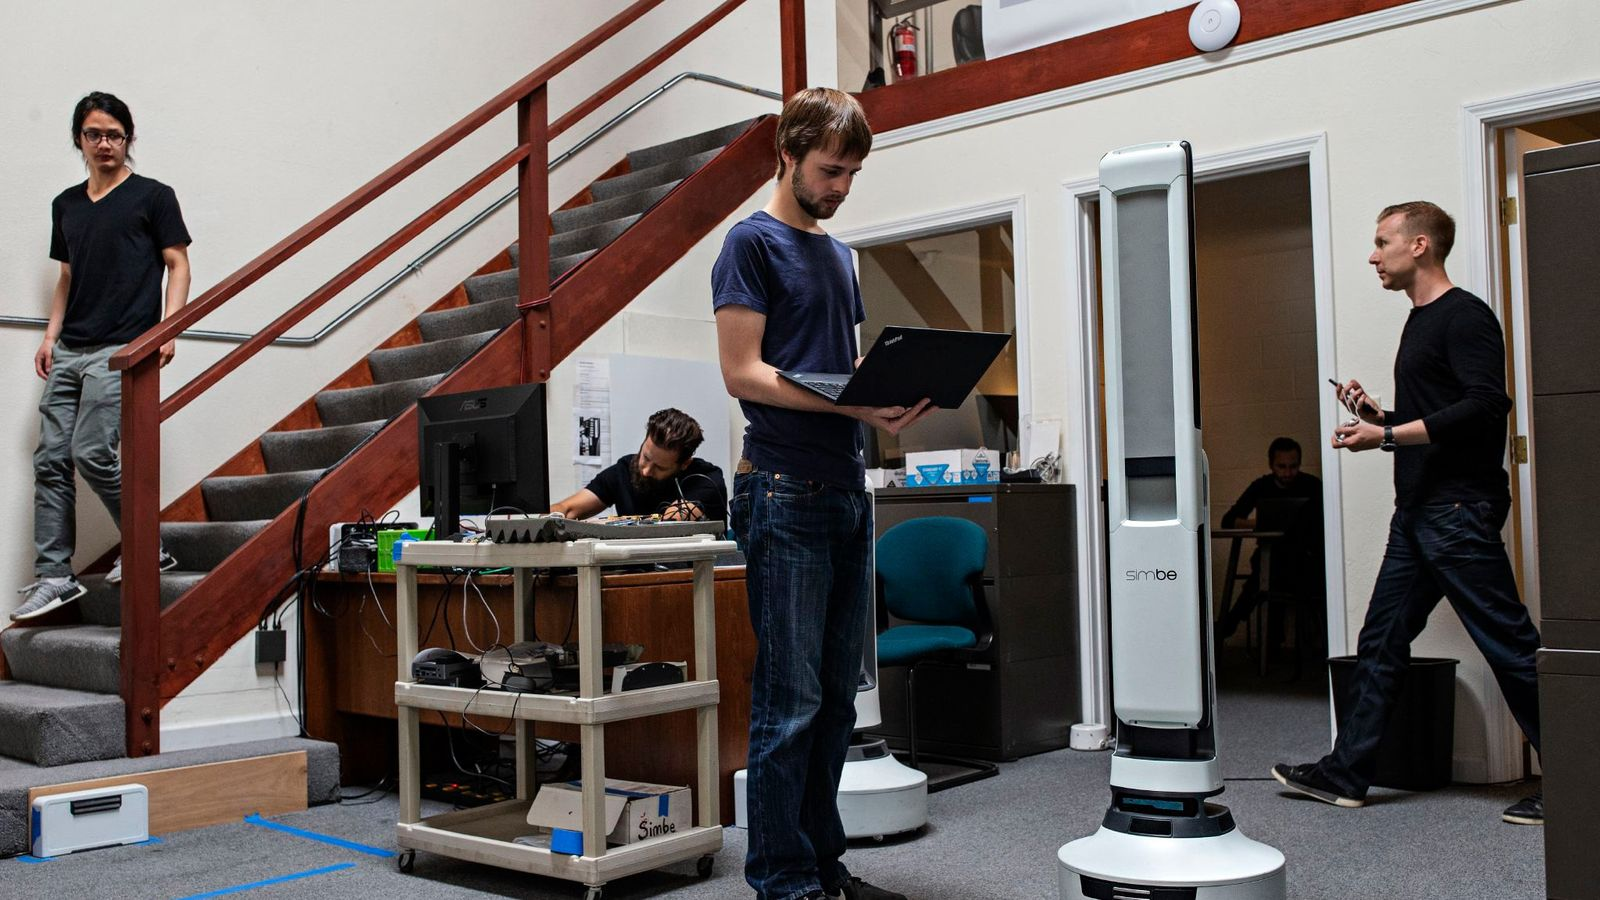 Senior robotics engineer Steven Macenski works on robot perception with the Tally robot, which is designed ...